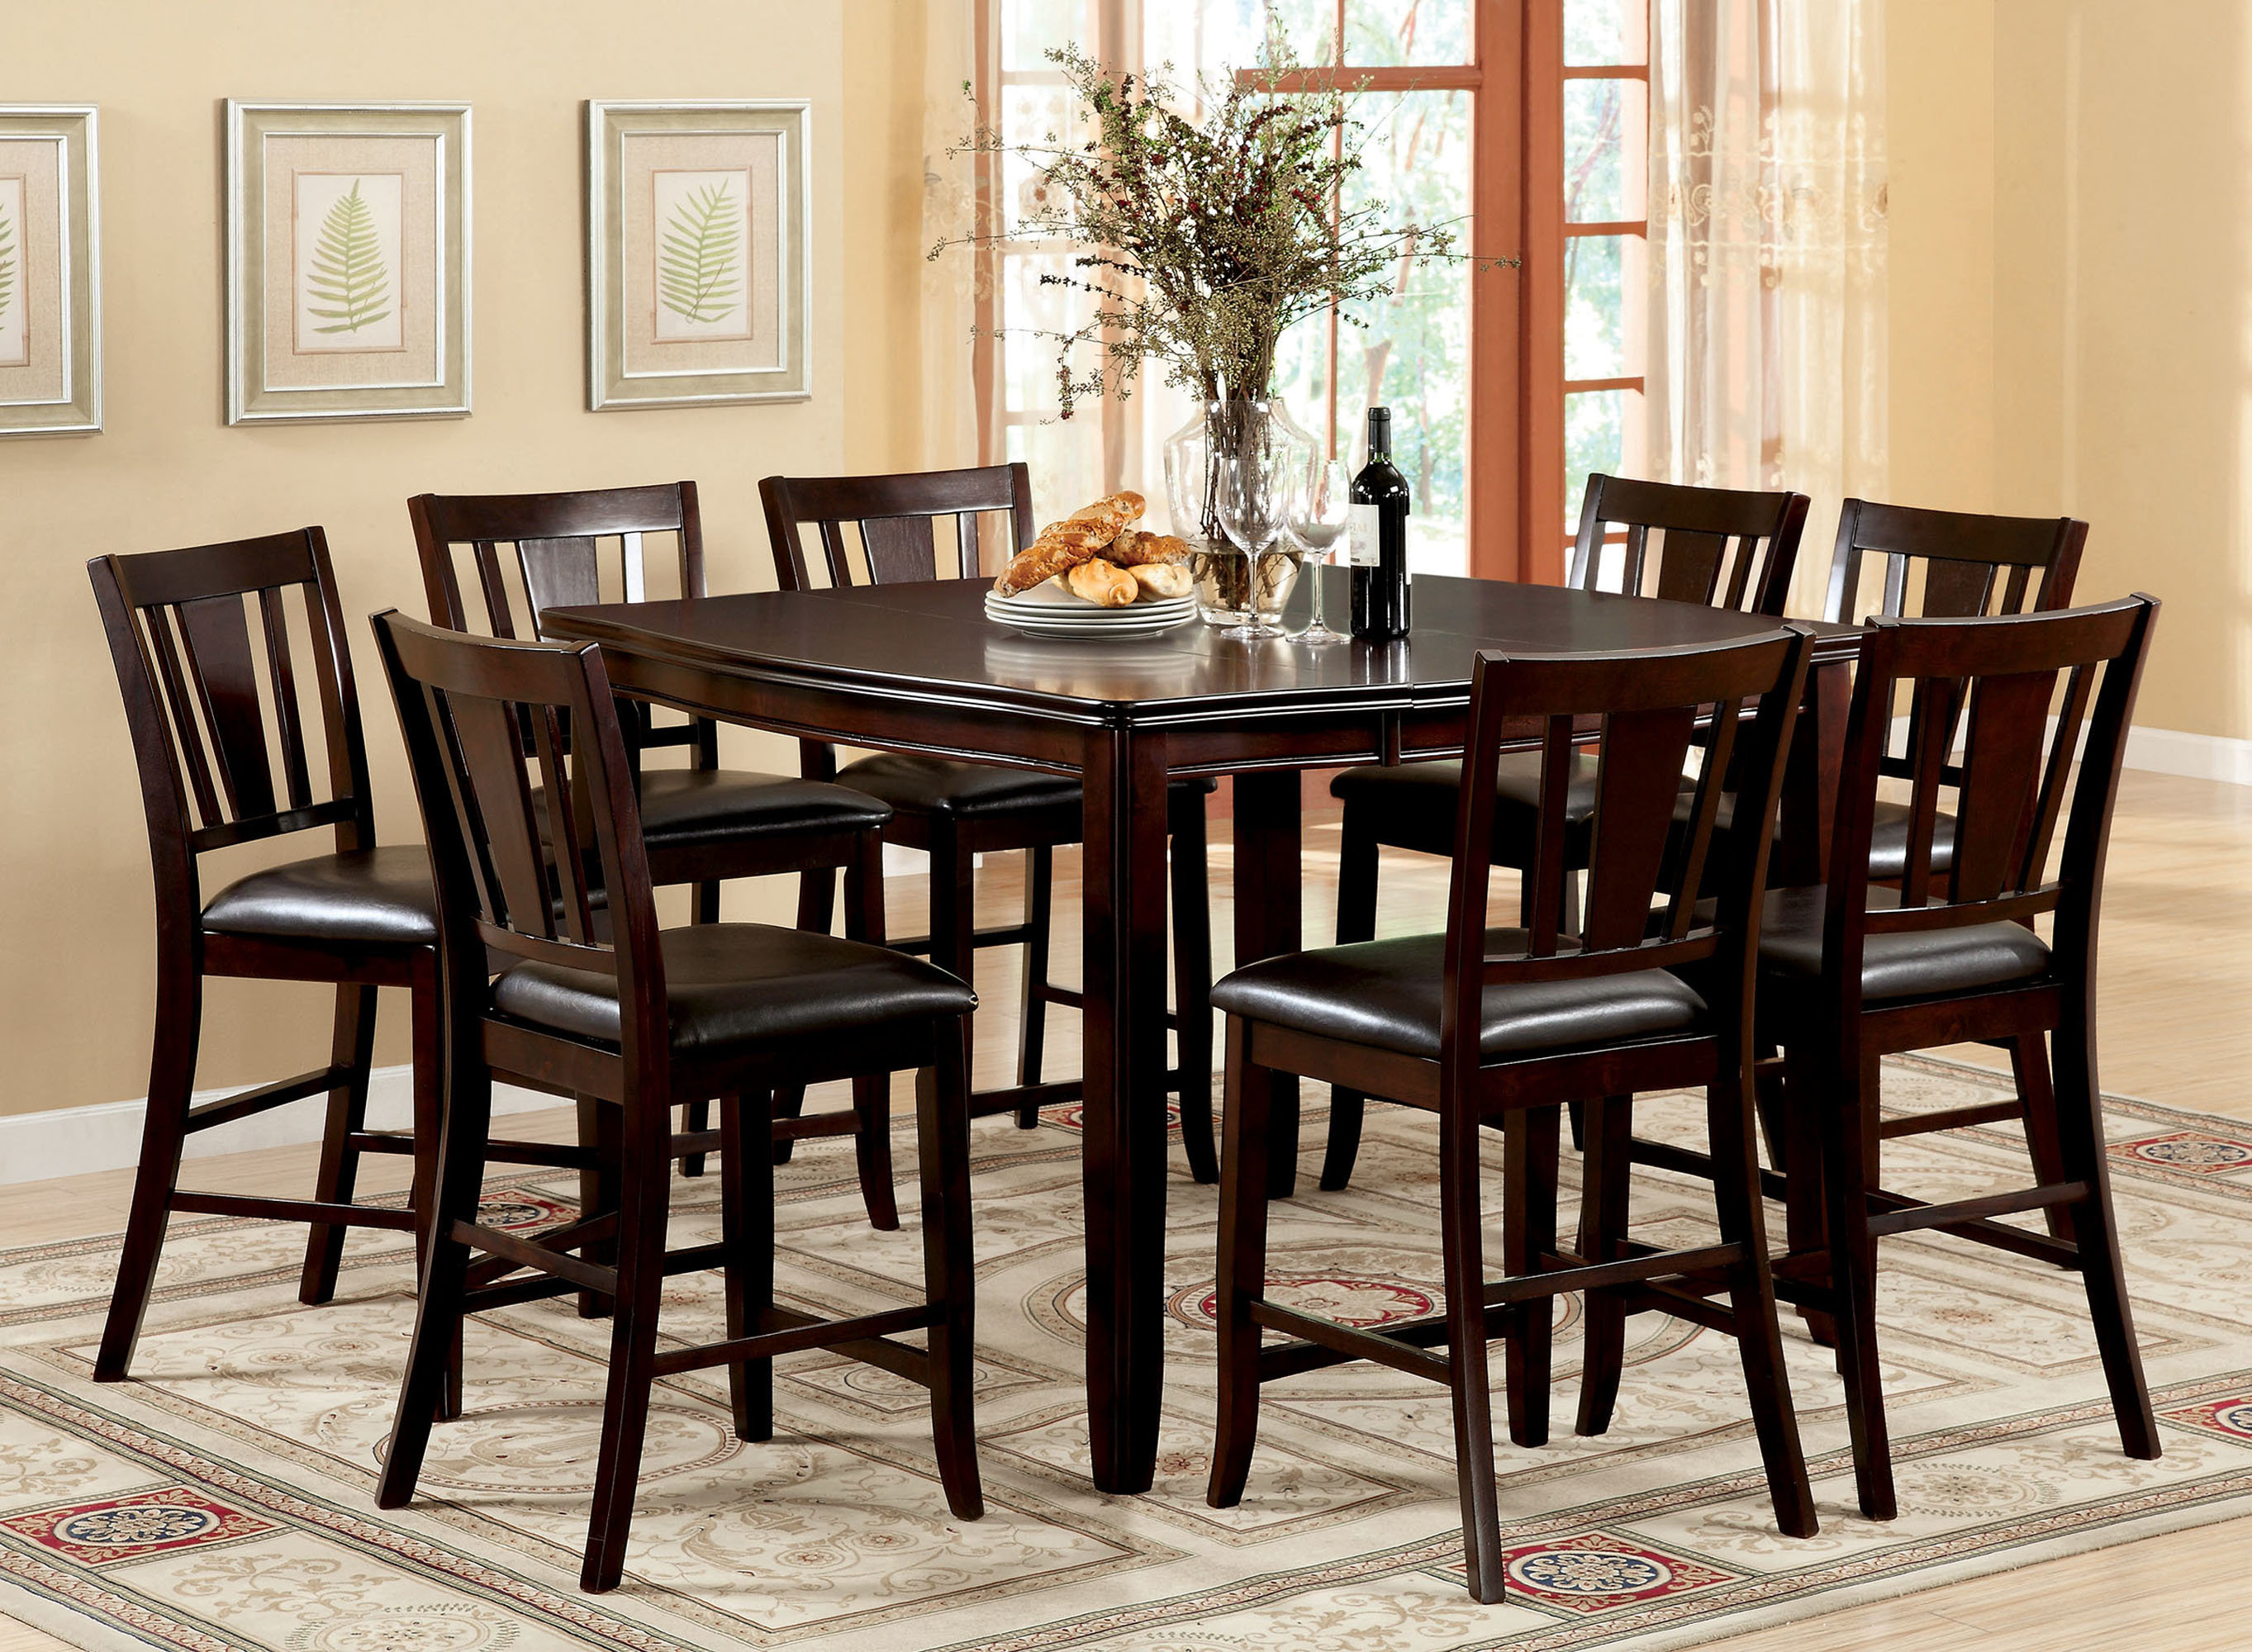 Fritz Jimmy 9 Piece Counter Height Dining Set Regarding Newest Biggs 5 Piece Counter Height Solid Wood Dining Sets (Set Of 5) (View 2 of 20)